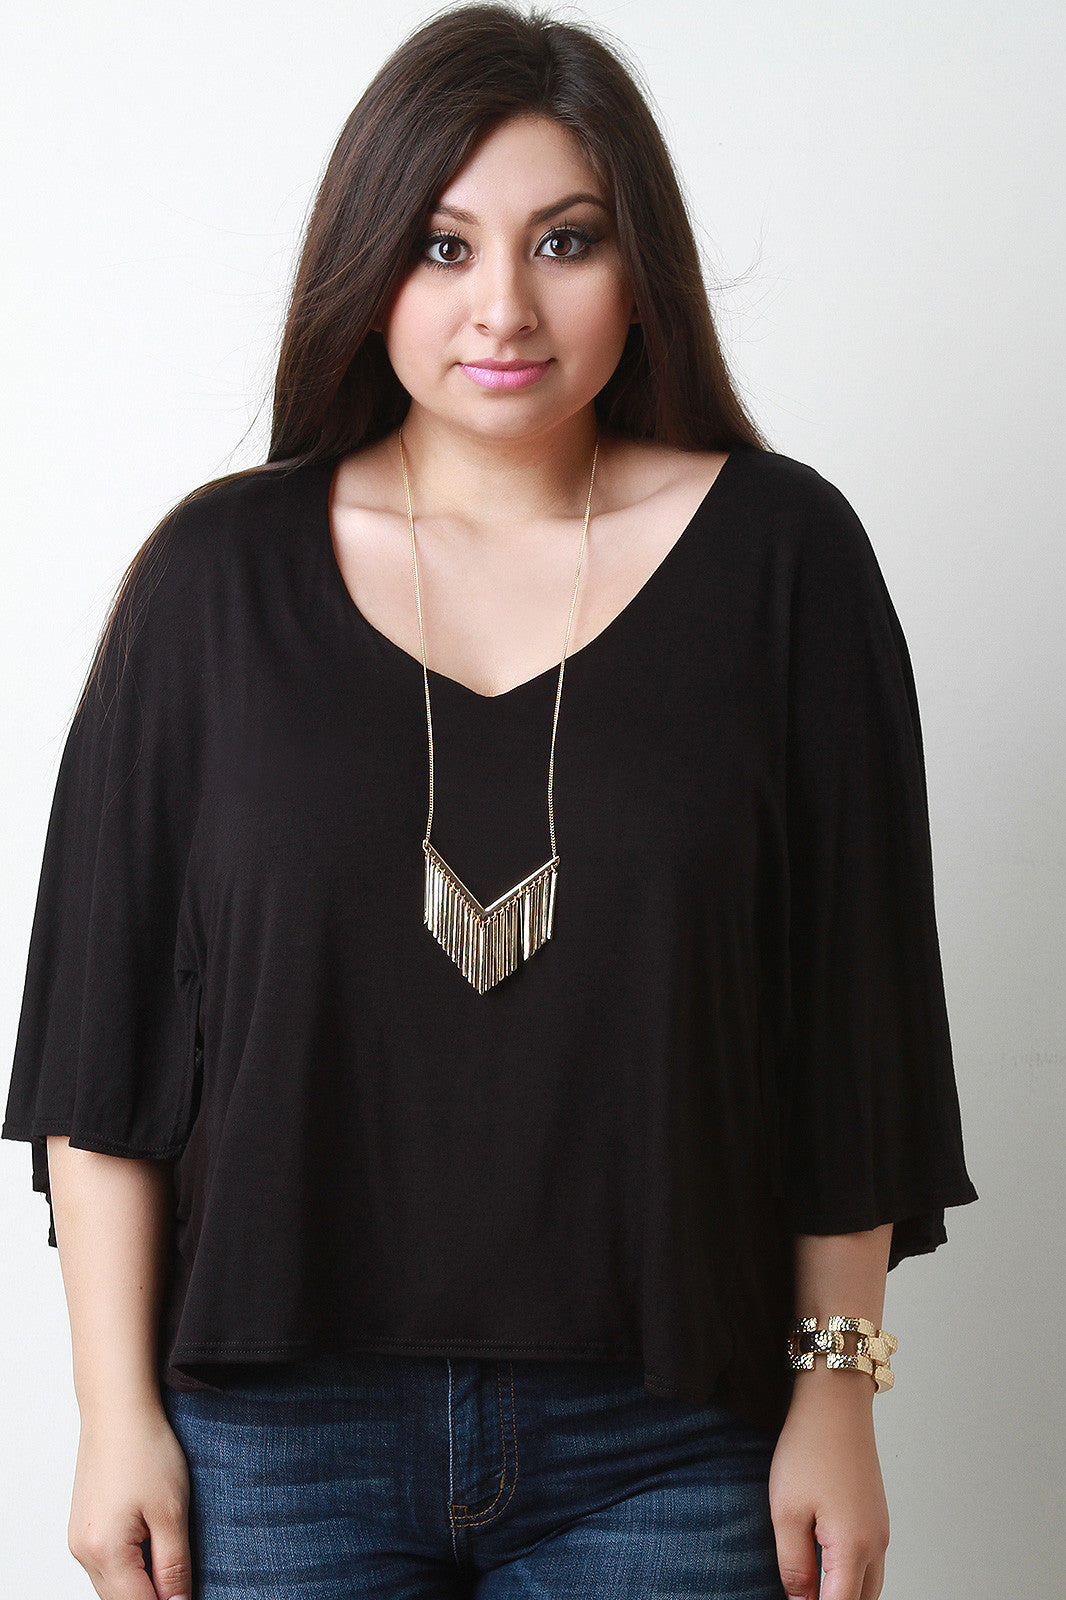 Jersey Knit V-Neck Dolman Sleeve Top - Thick 'N' Curvy Shop - 4